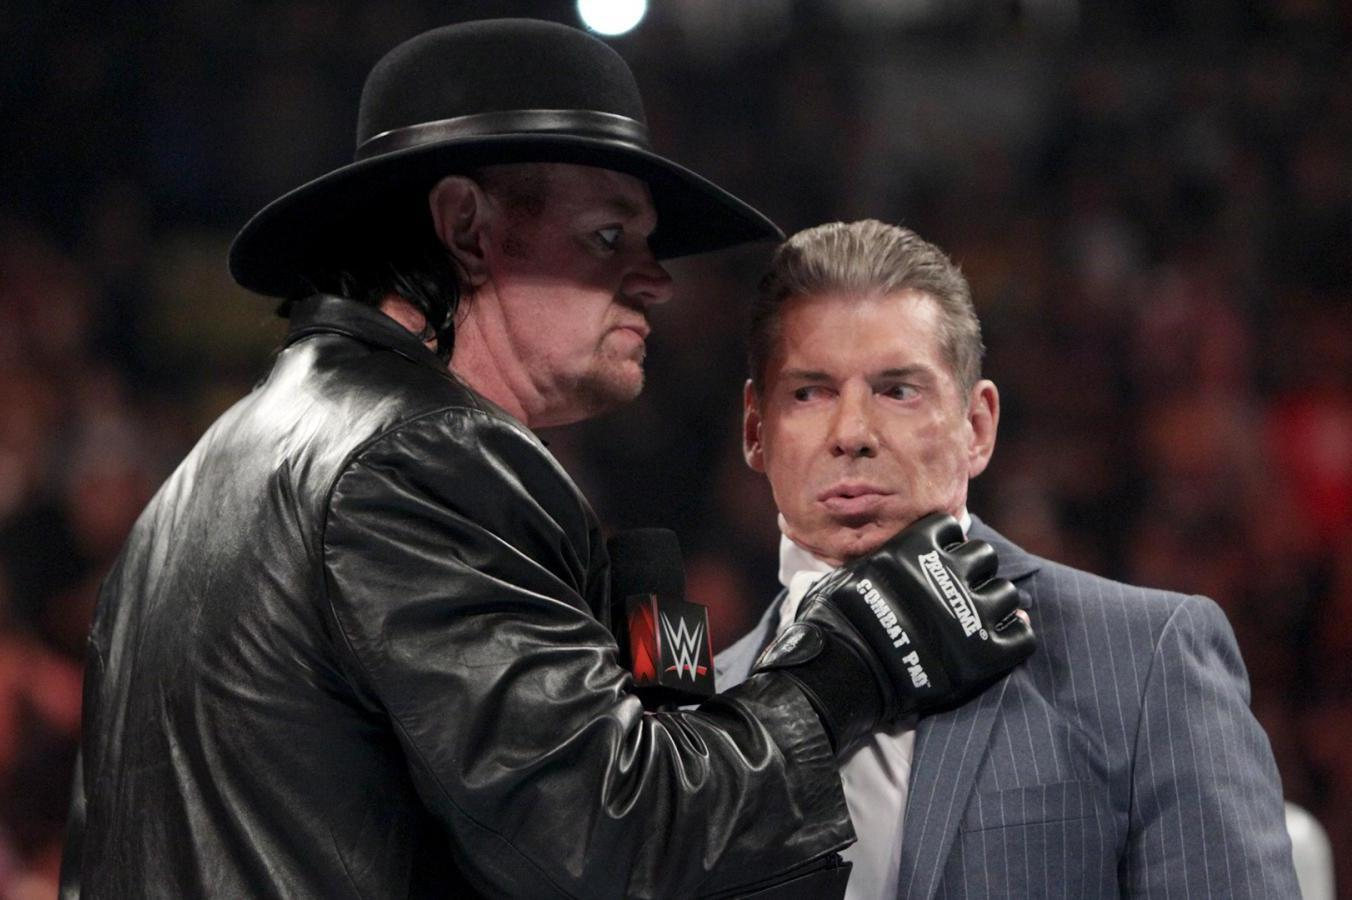 Undertaker S Appearance On Wwe Raw Reveals Feud Is About